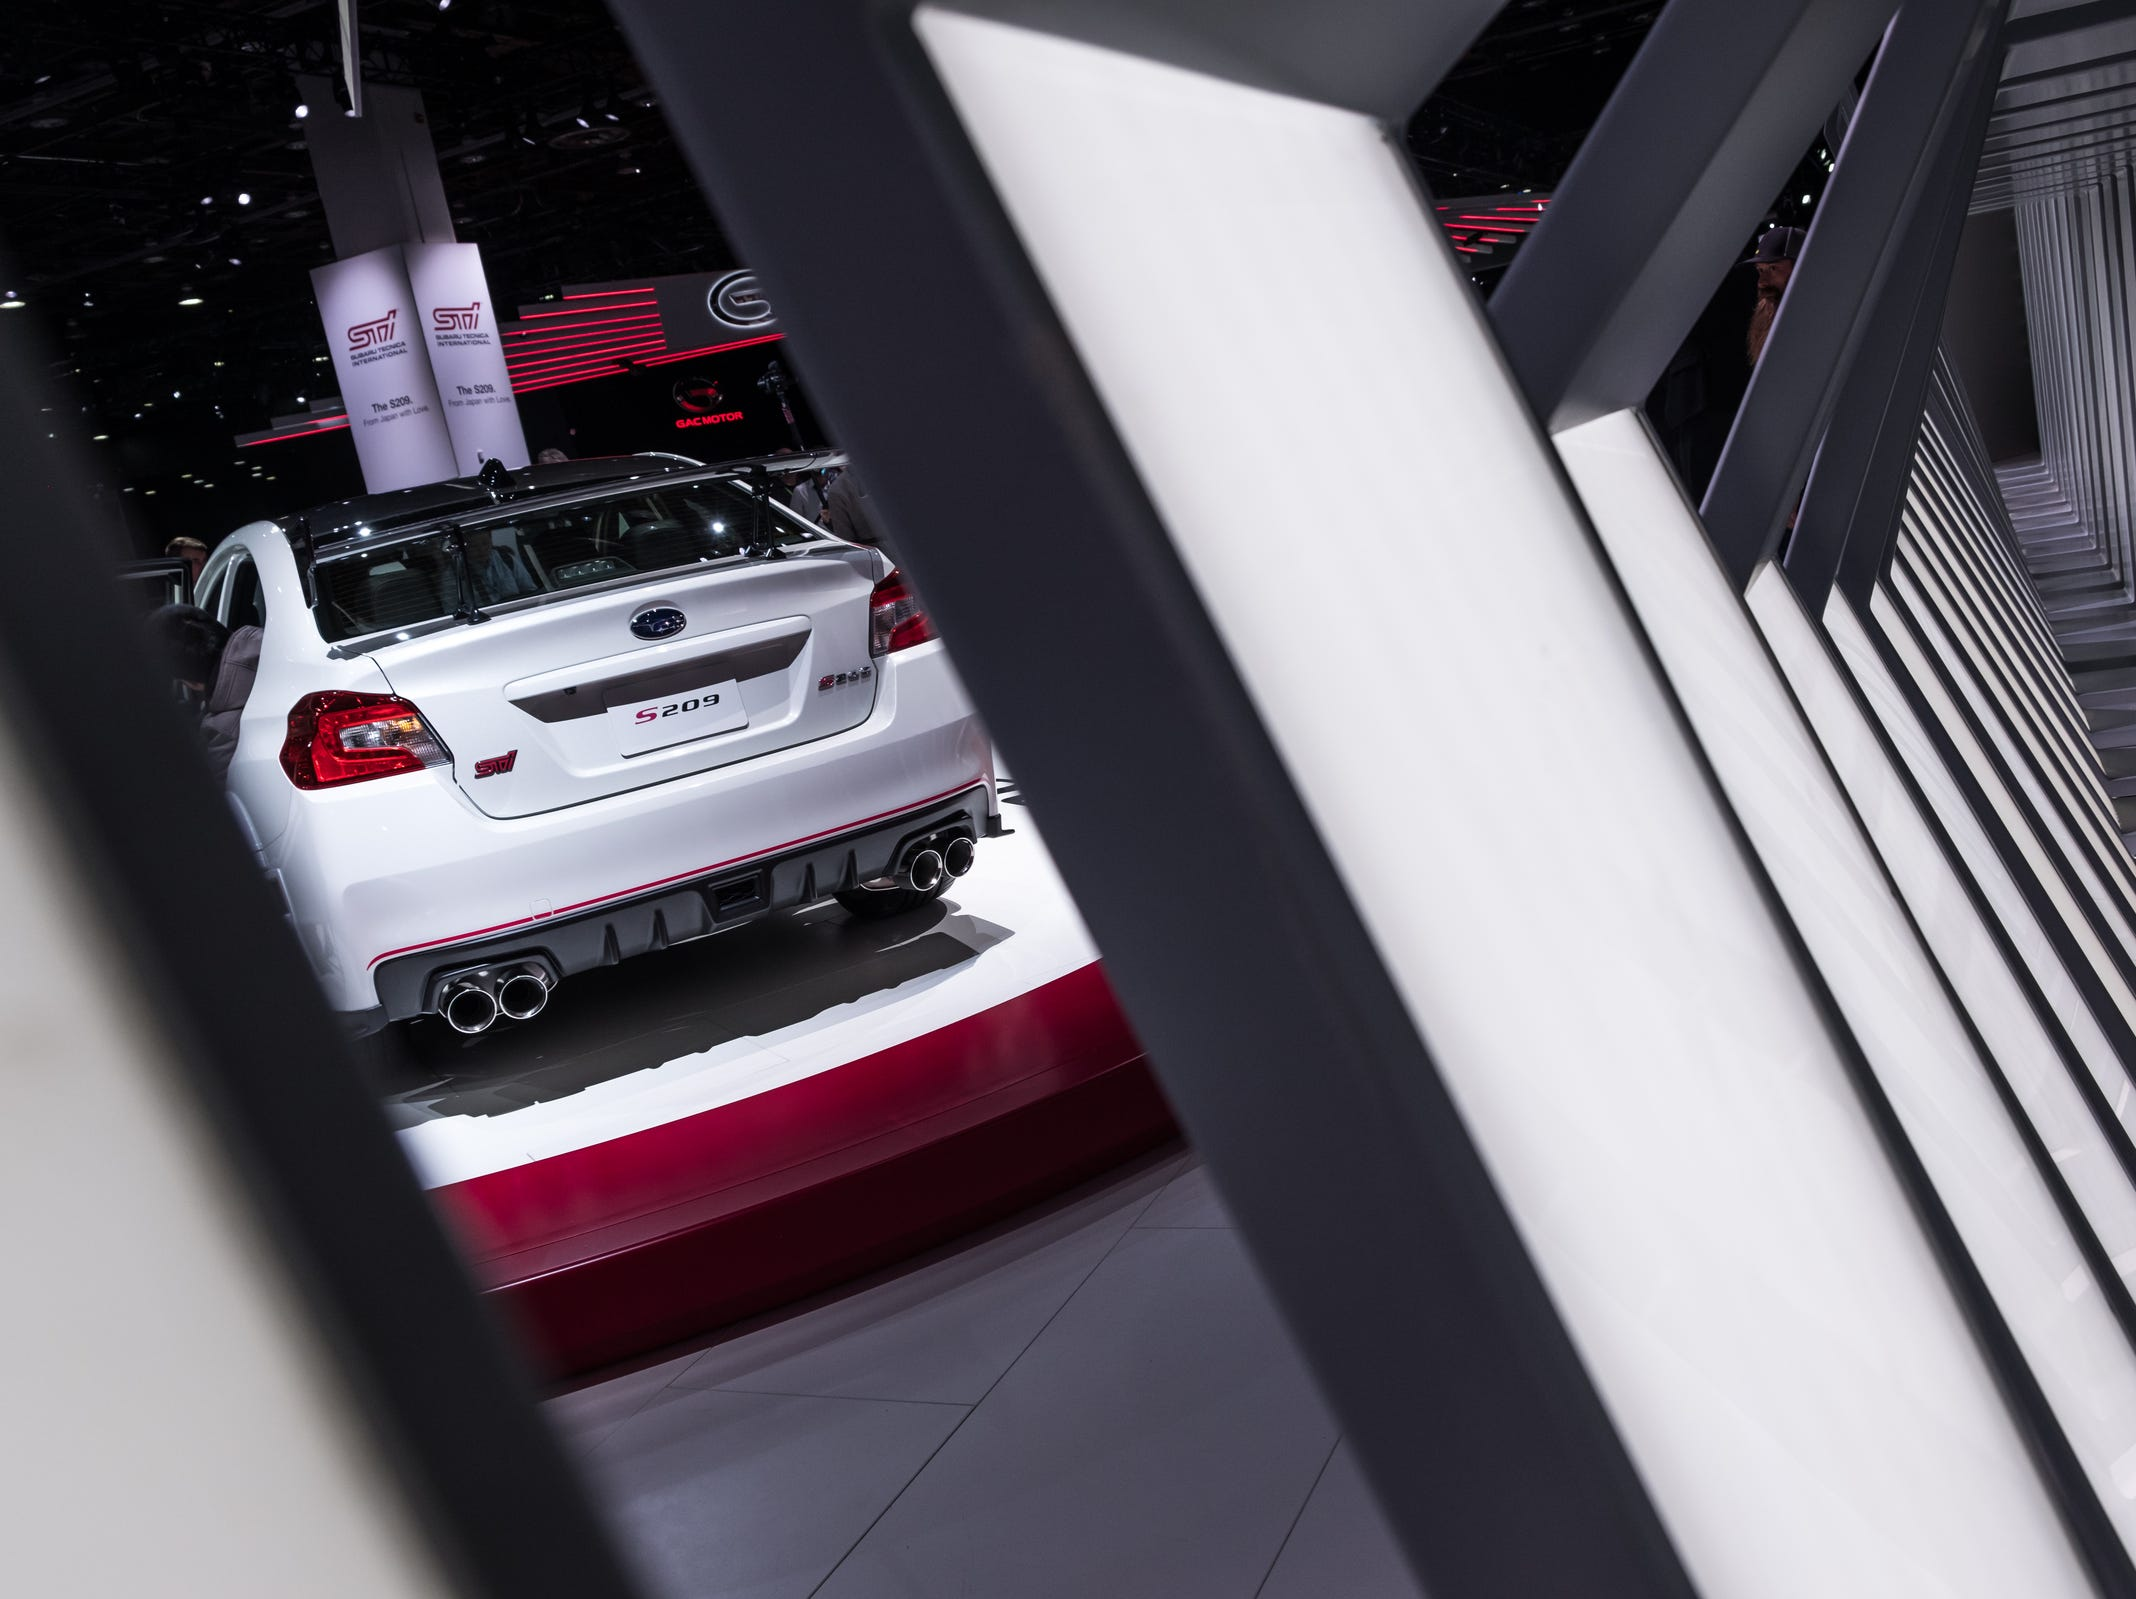 The 2020 Subaru S209 is seen during the 2019 North American International Auto Show held at Cobo Center in downtown Detroit on Monday, Jan. 14, 2019.